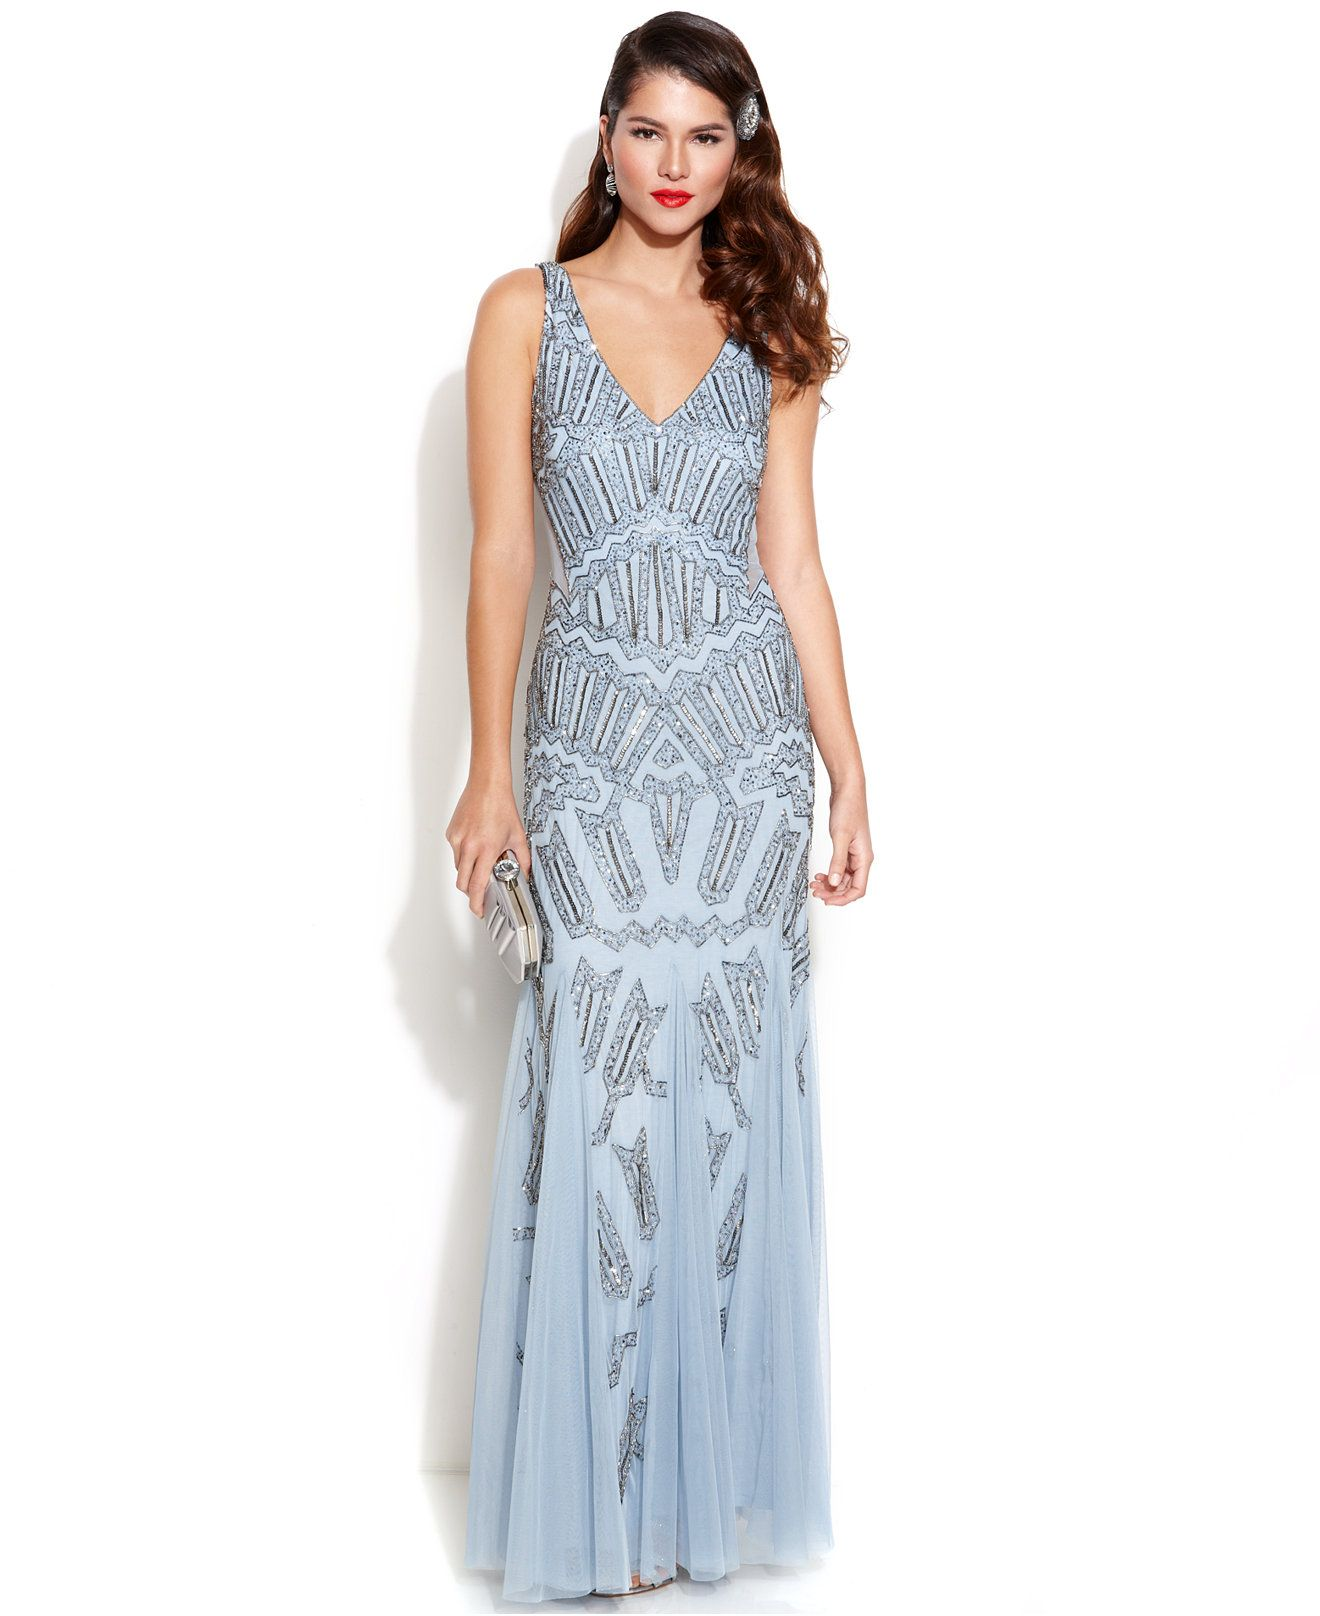 Vintage Women Simple Chiffon Backless Cheap Mermaid: This Dramatic Art Deco-inspired Adrianna Papell Gown Is